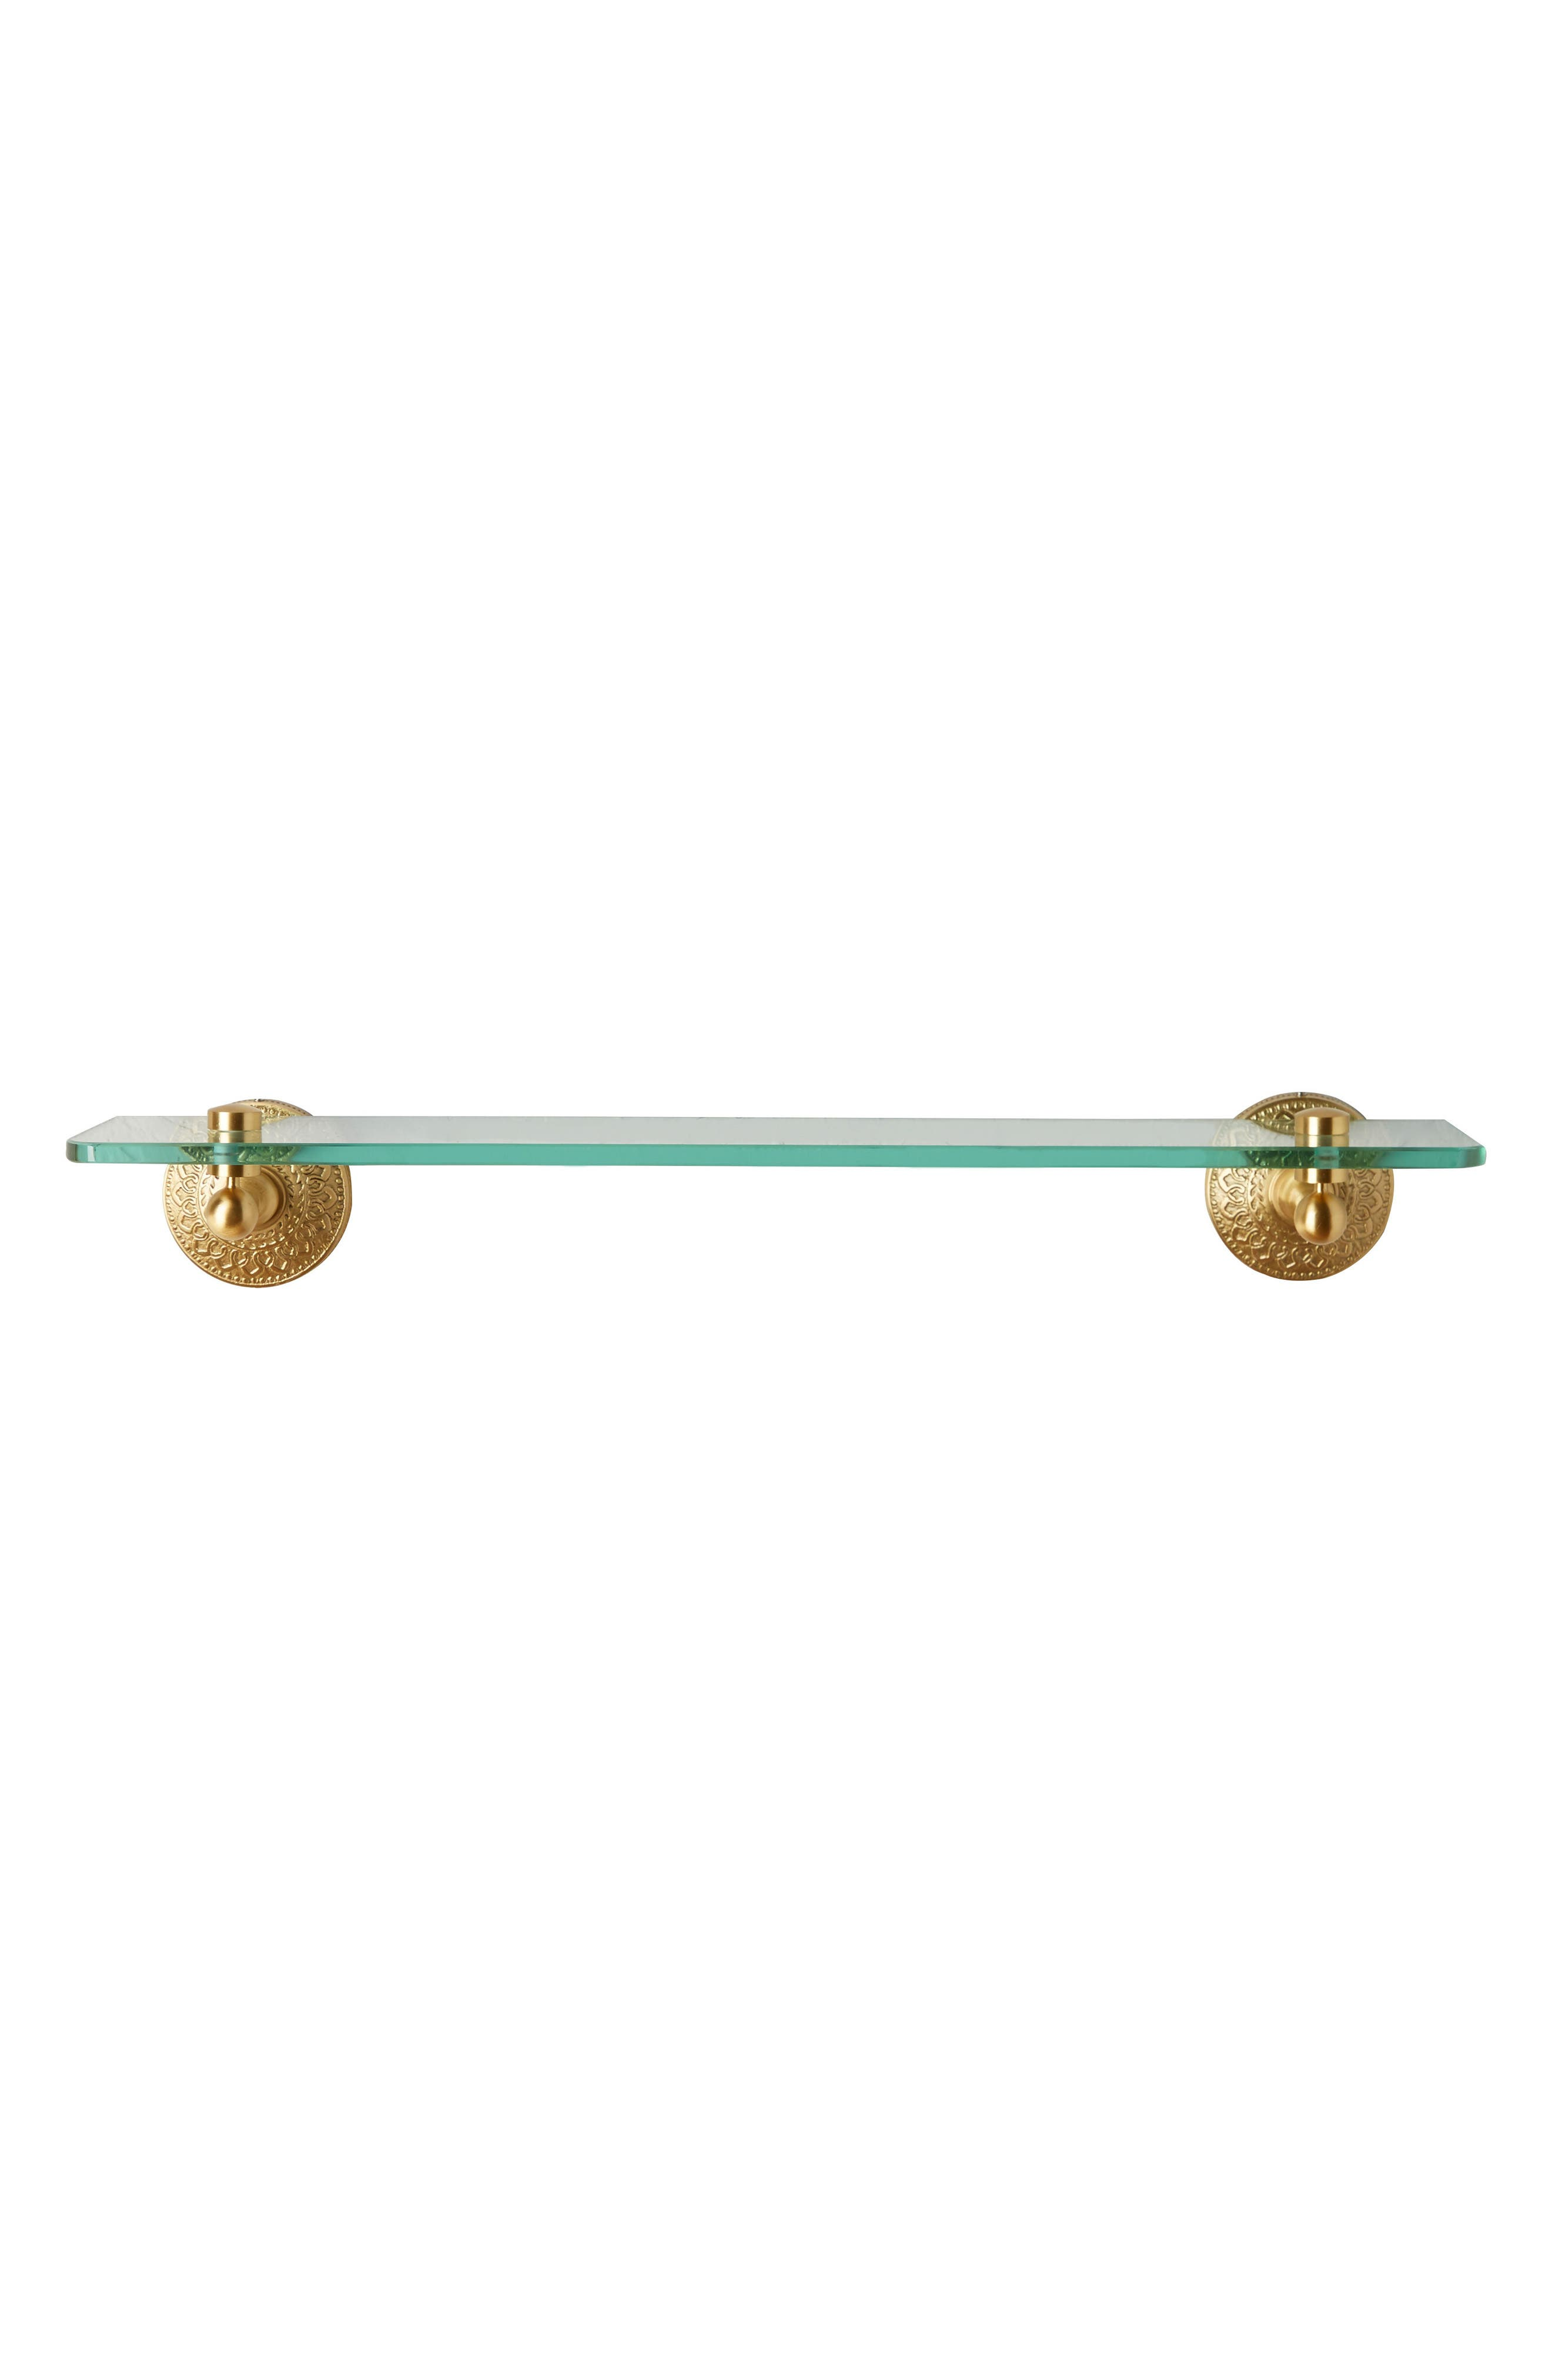 Brass Medallion Shelf,                             Alternate thumbnail 4, color,                             Honey